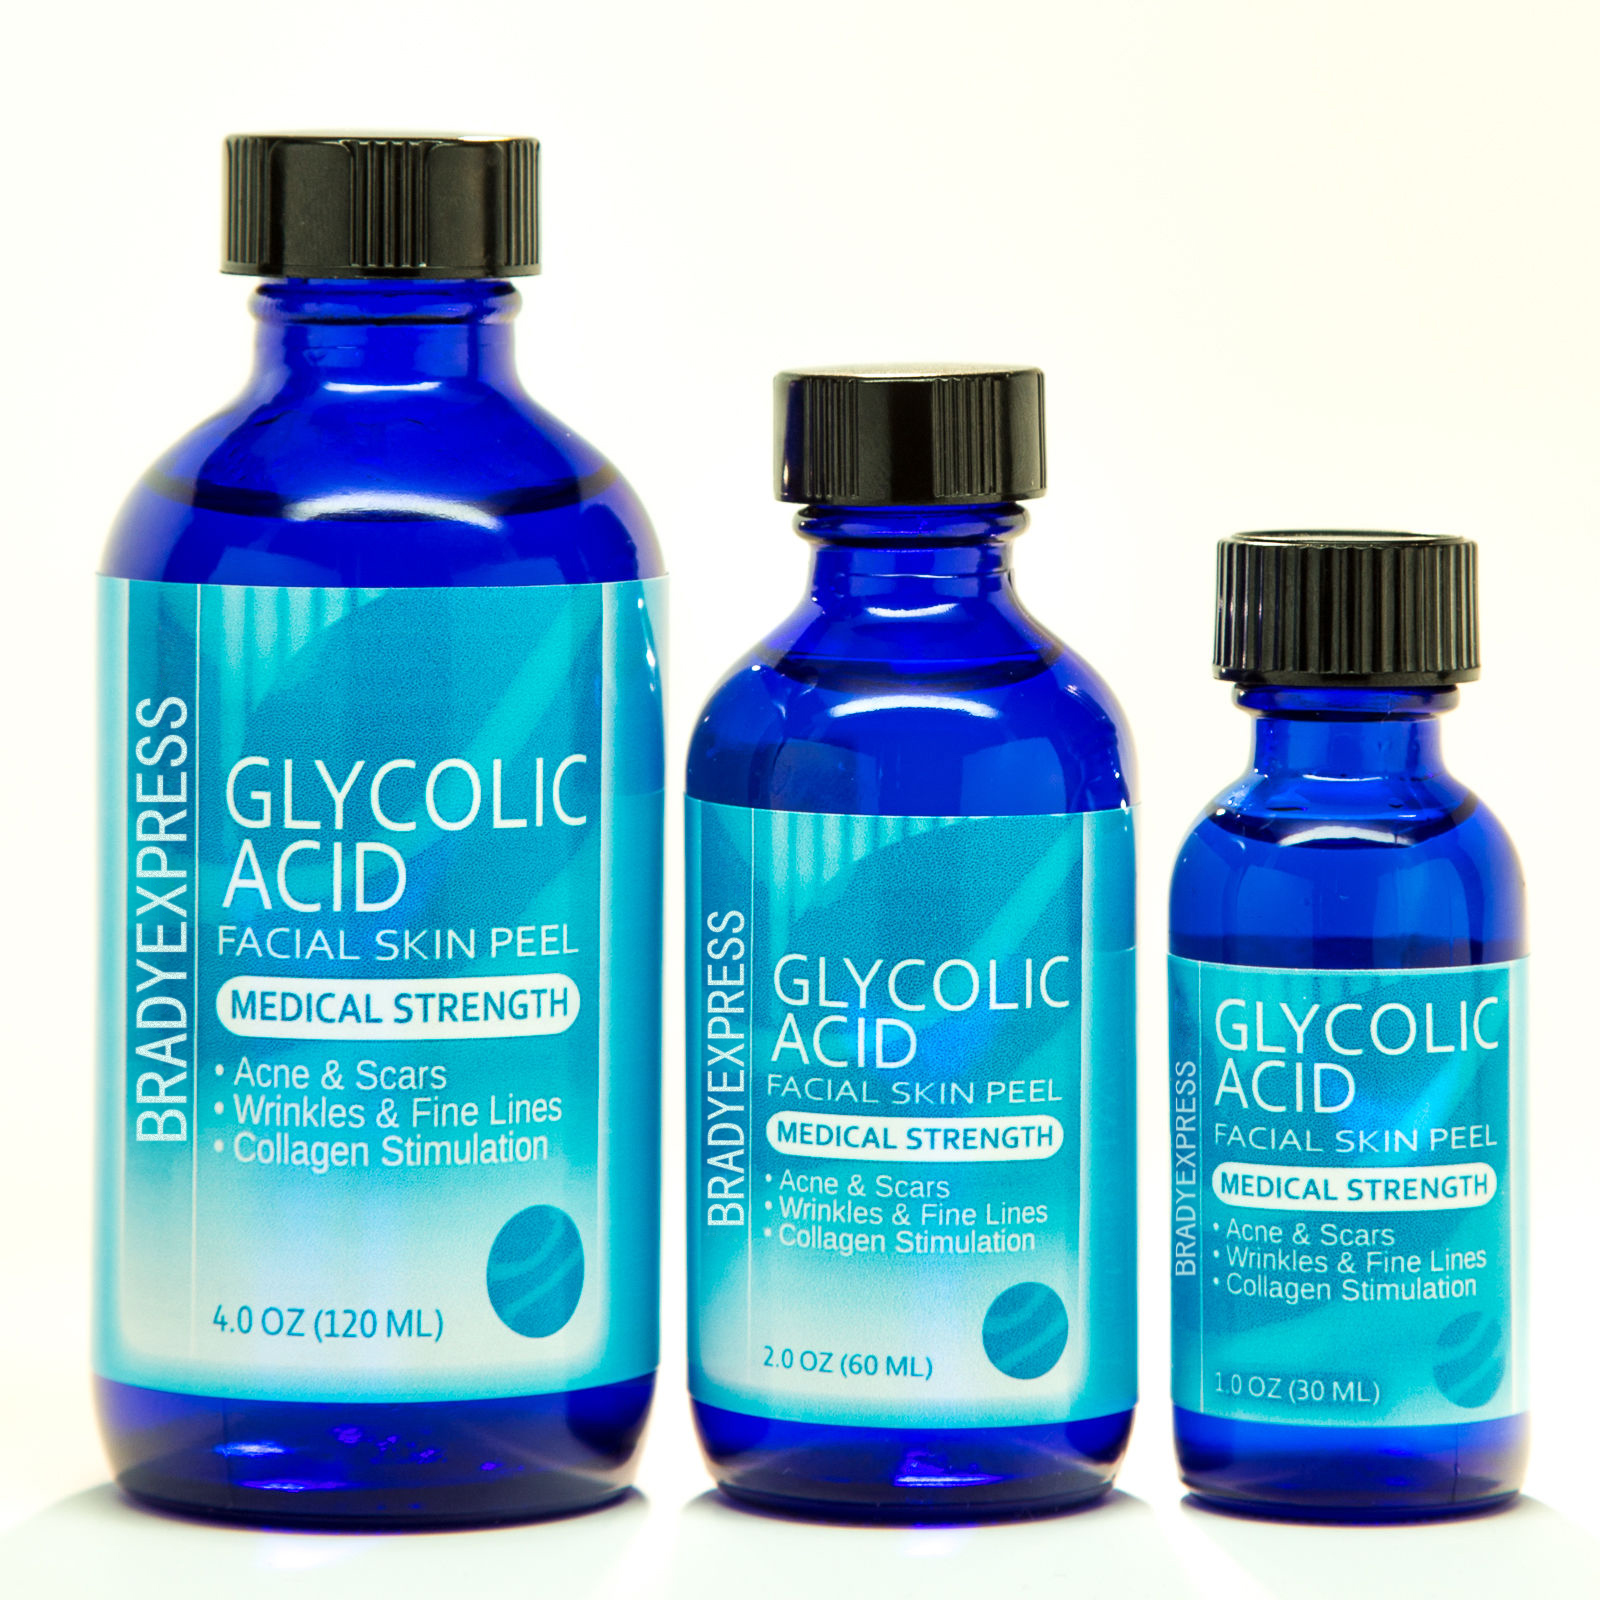 NEW GLYCOLIC ACID Chemical Peel Kit Medical Grade - 100% Pure! Acne, Scars, Wrinkles FREE SHIPPING